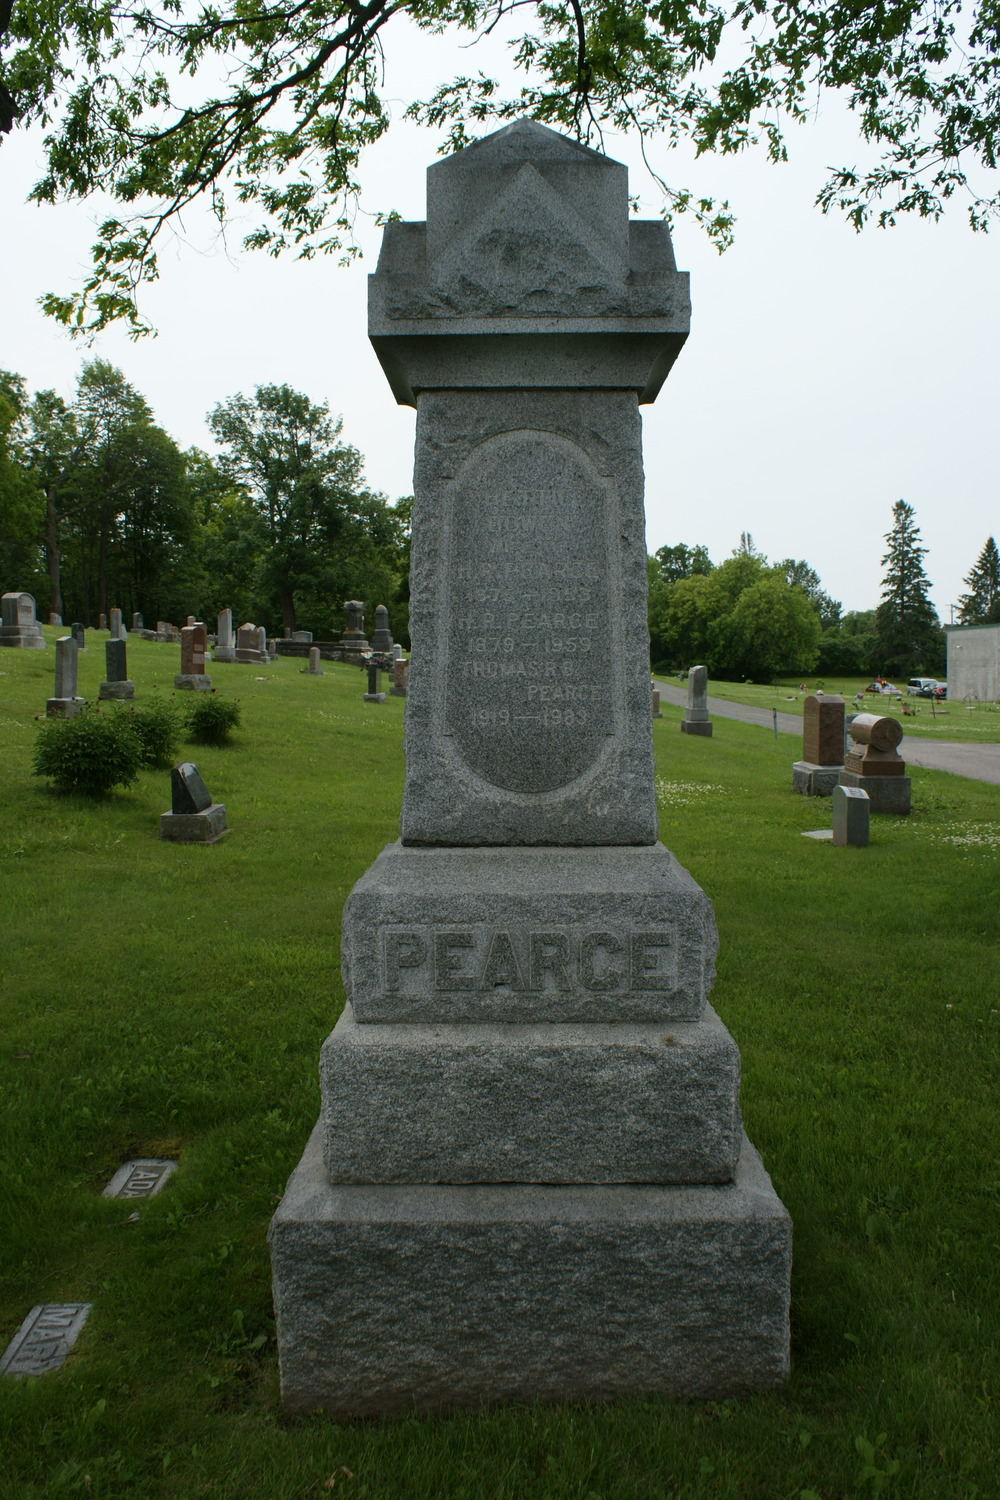 Common Cemetery Pearce.JPG